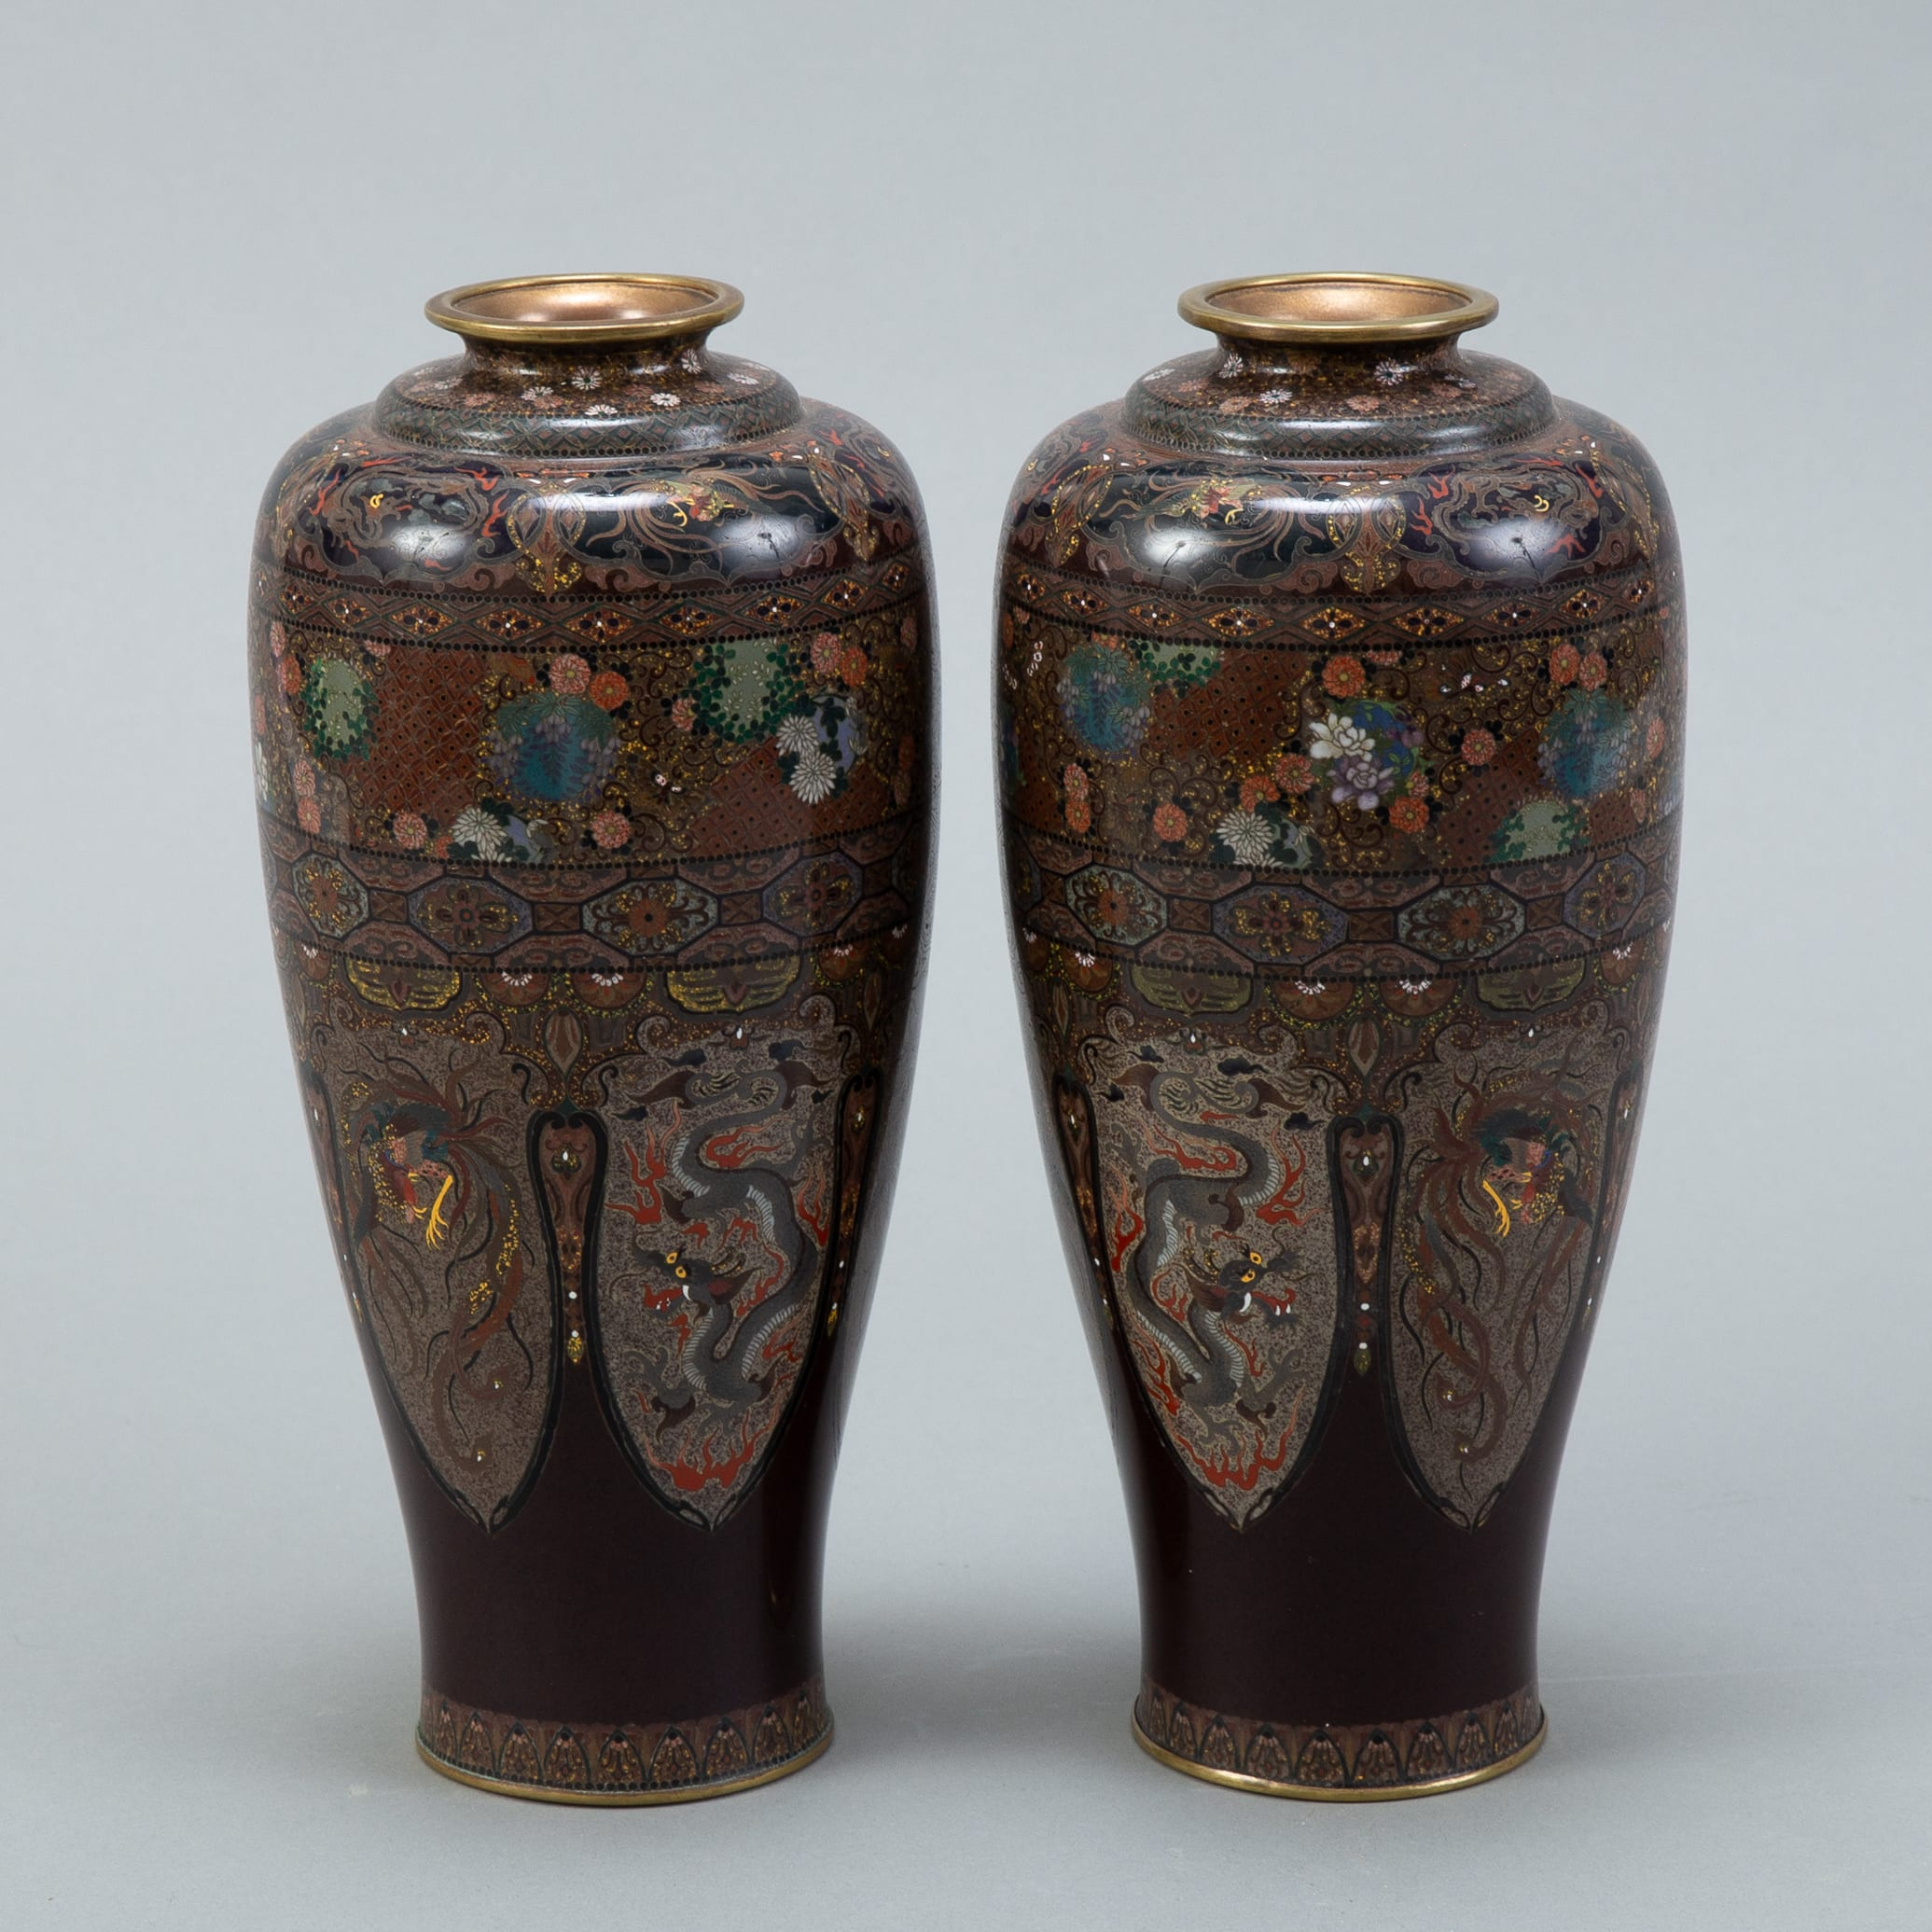 Lot 013: Japanese Meiji Mirrored Pair of Cloisonne Vases